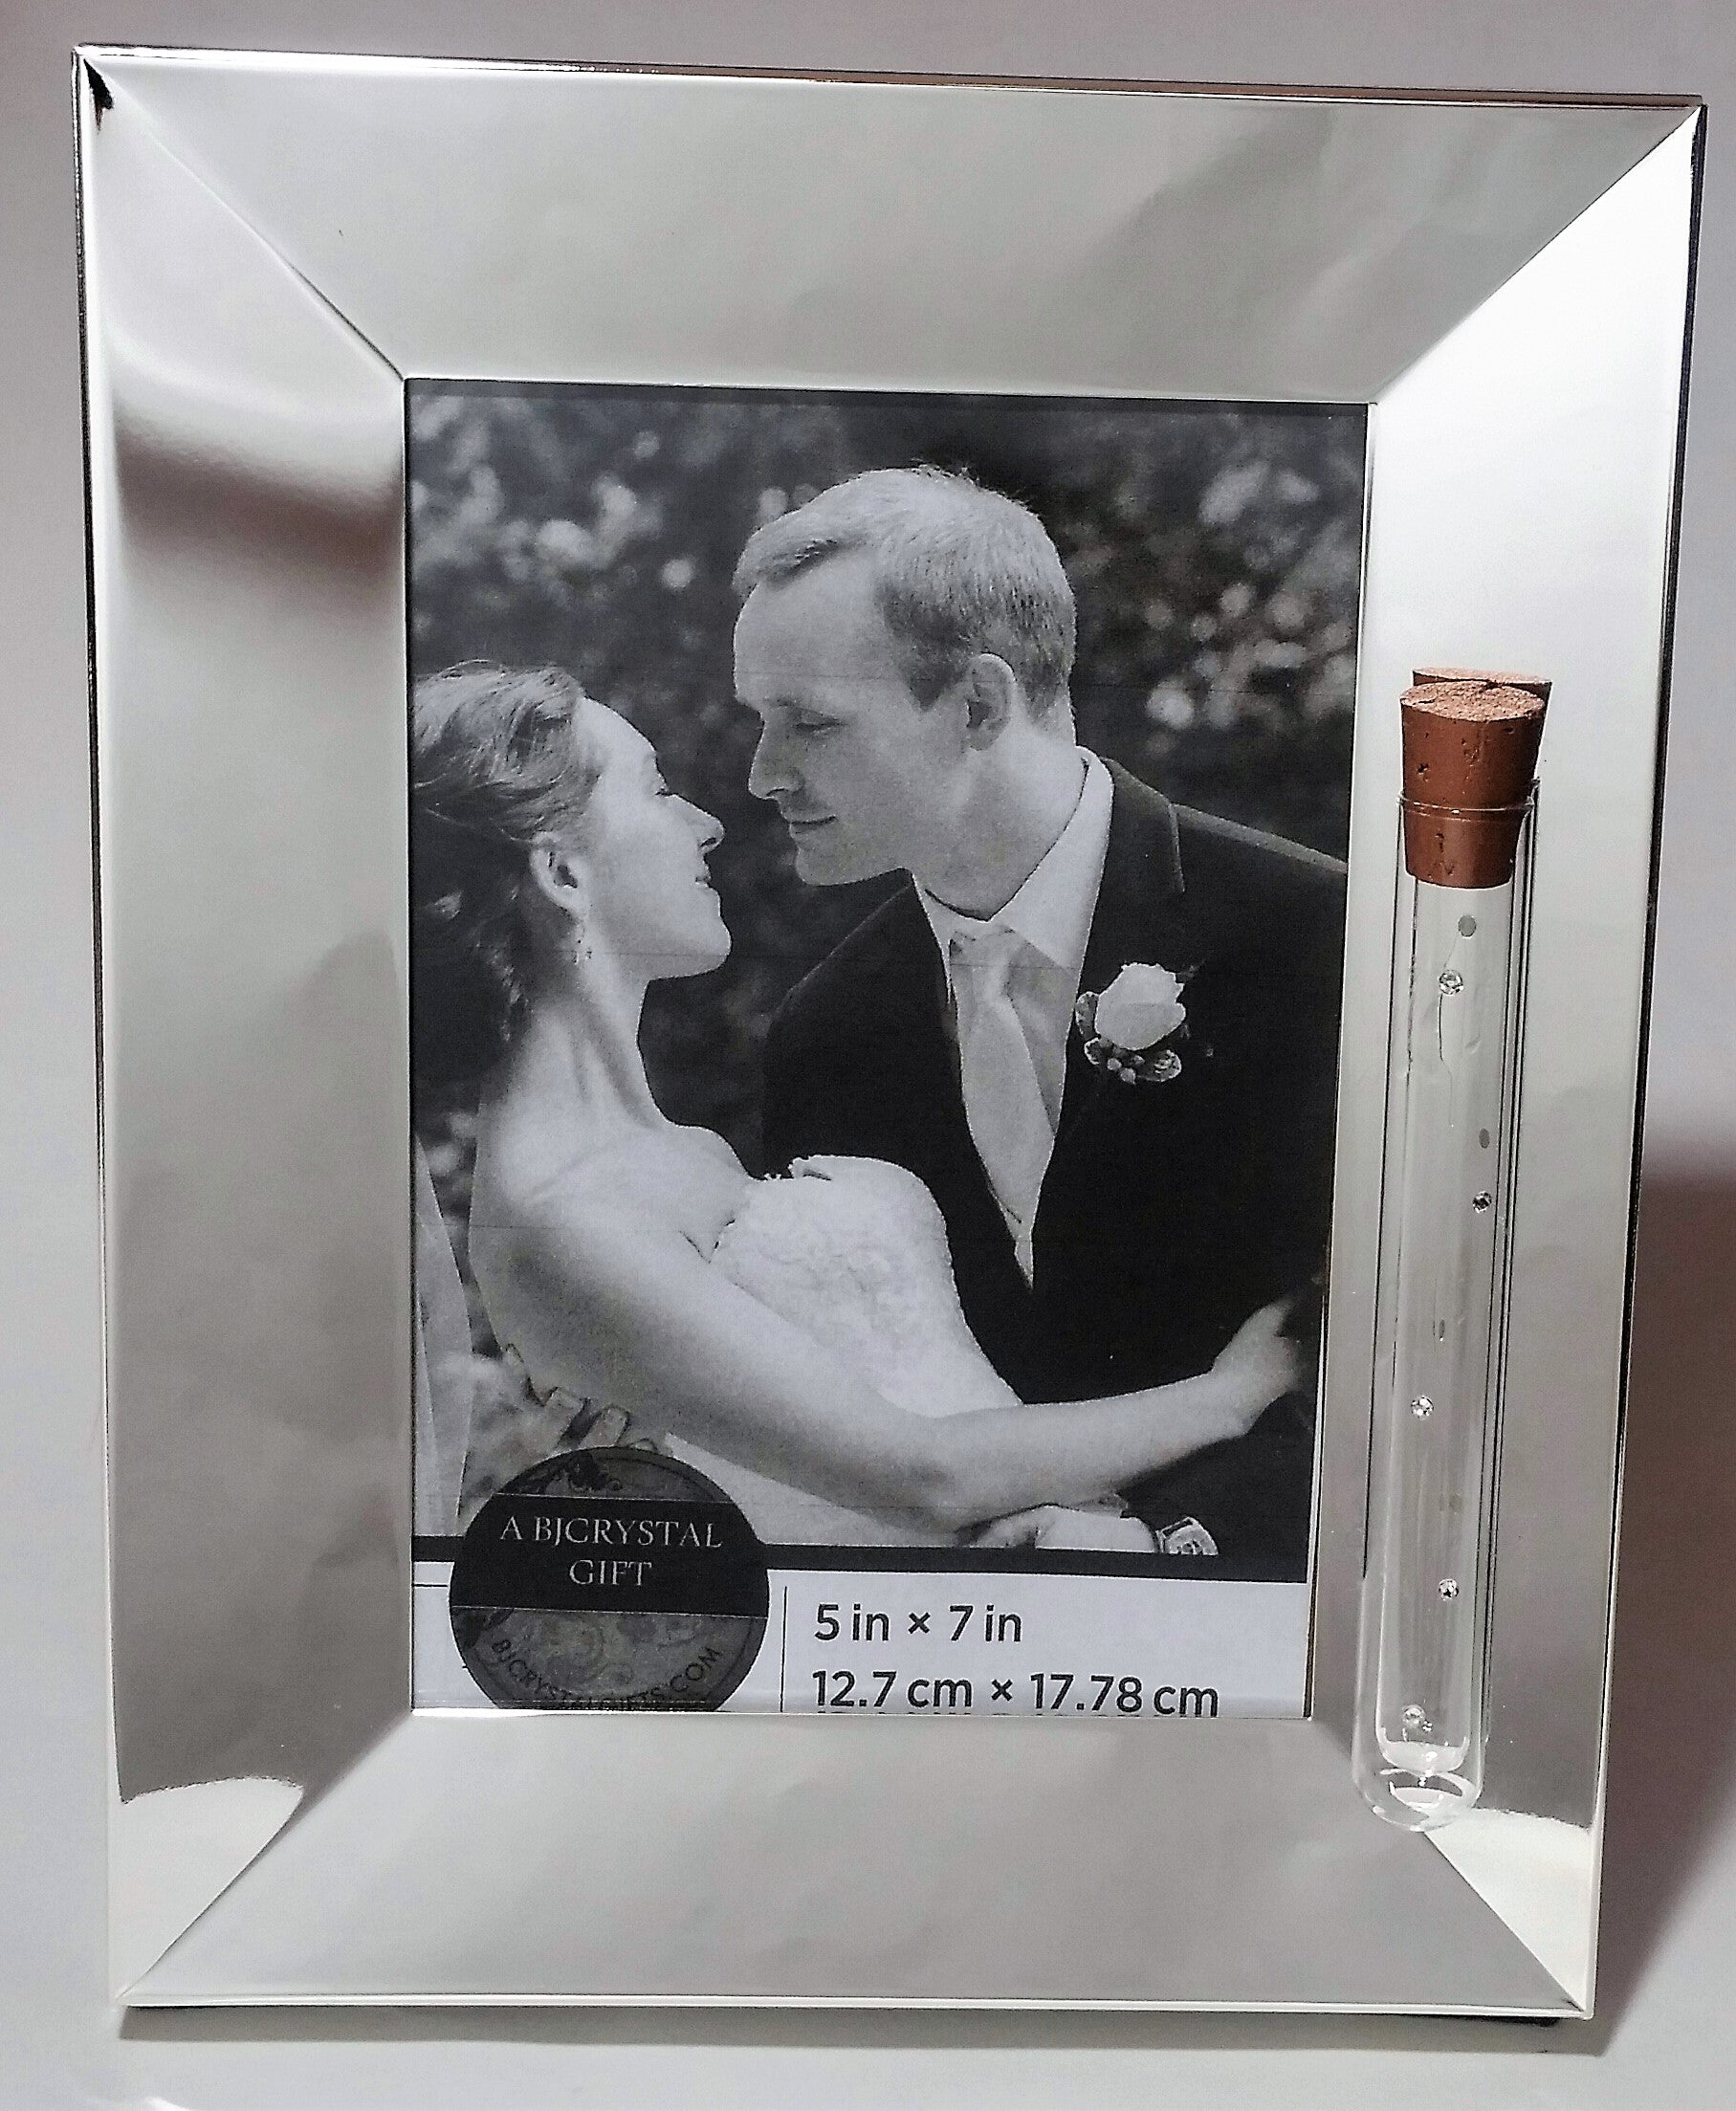 Jewish Wedding Picture Frame - Jewish Engagement Gift - Silver Plated Reflective - 5x7 Picture